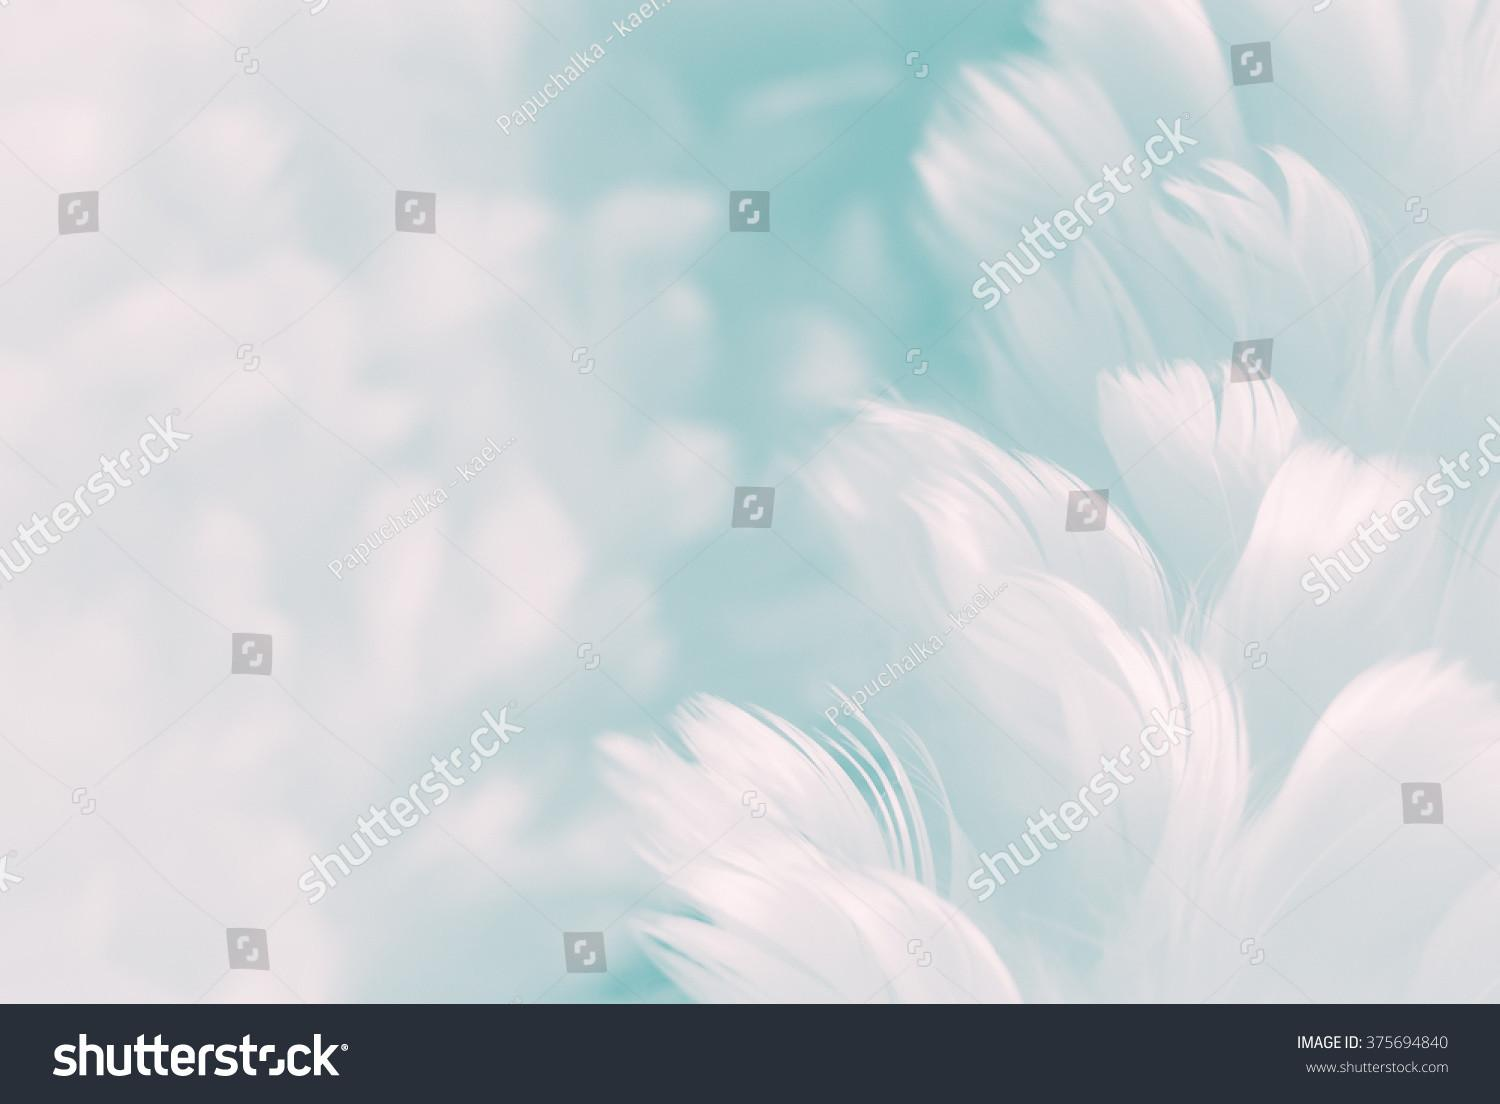 White Fluffy Feathers Pale Teal Stock